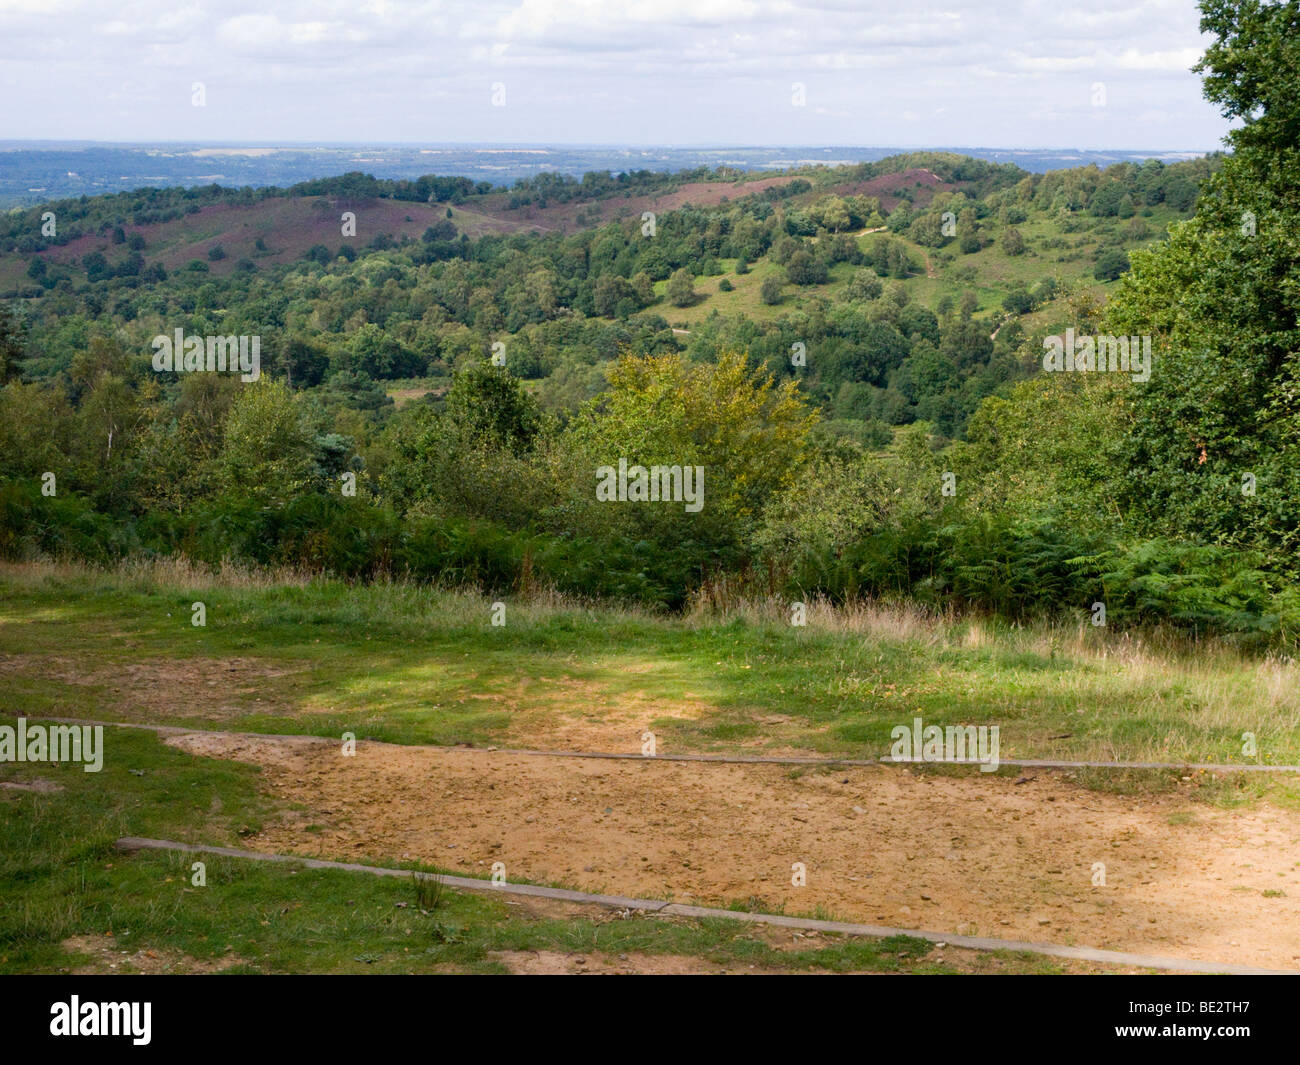 A view over the Devil's Punchbowl with a footpath in the foreground. Hindhead. Surrey. UK. - Stock Image